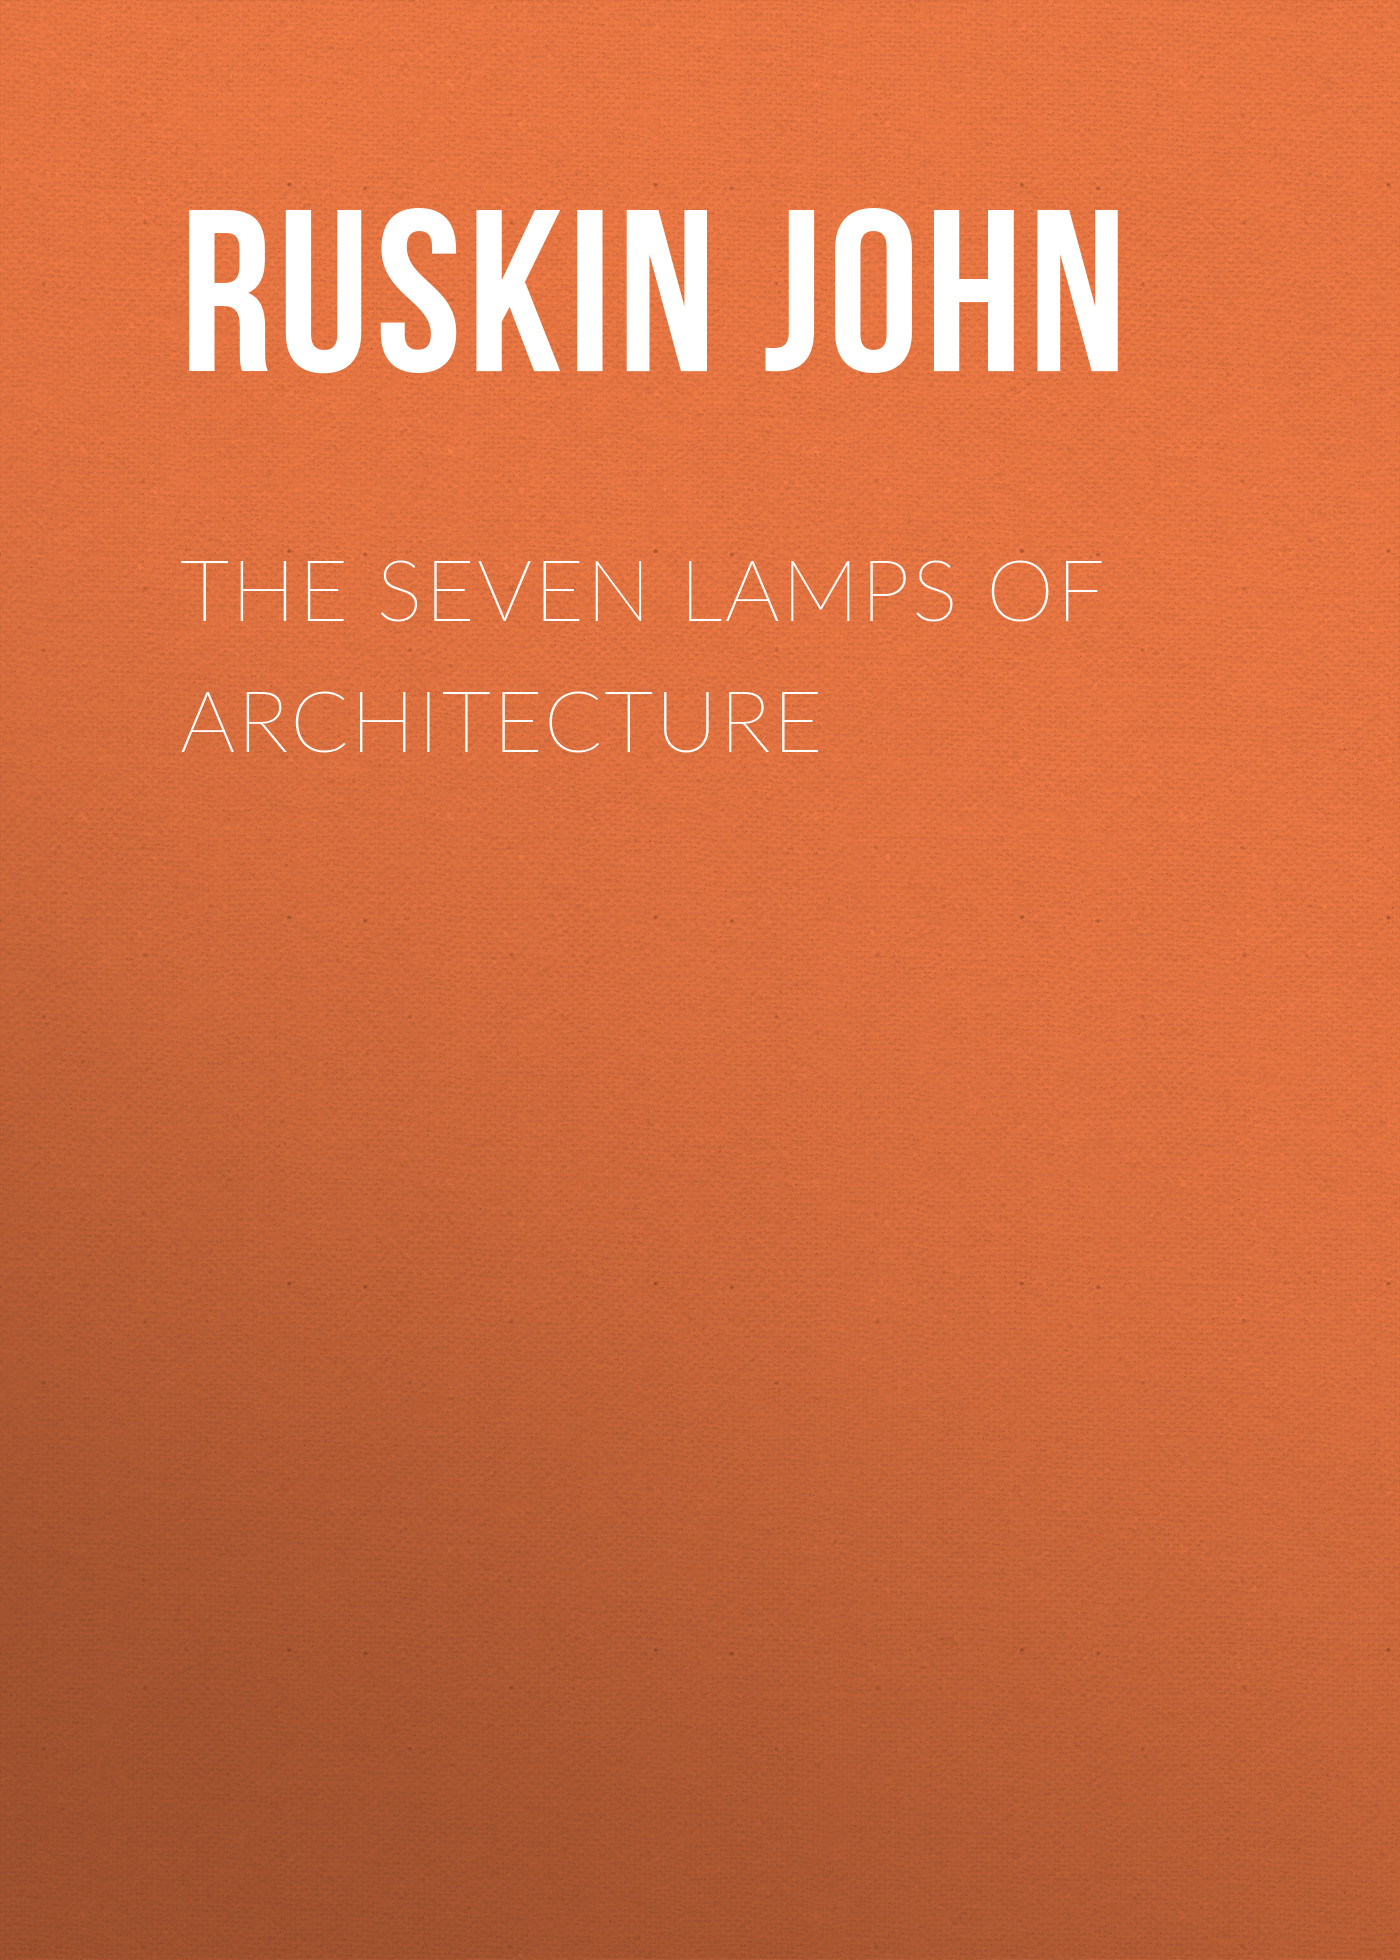 лучшая цена Ruskin John The Seven Lamps of Architecture